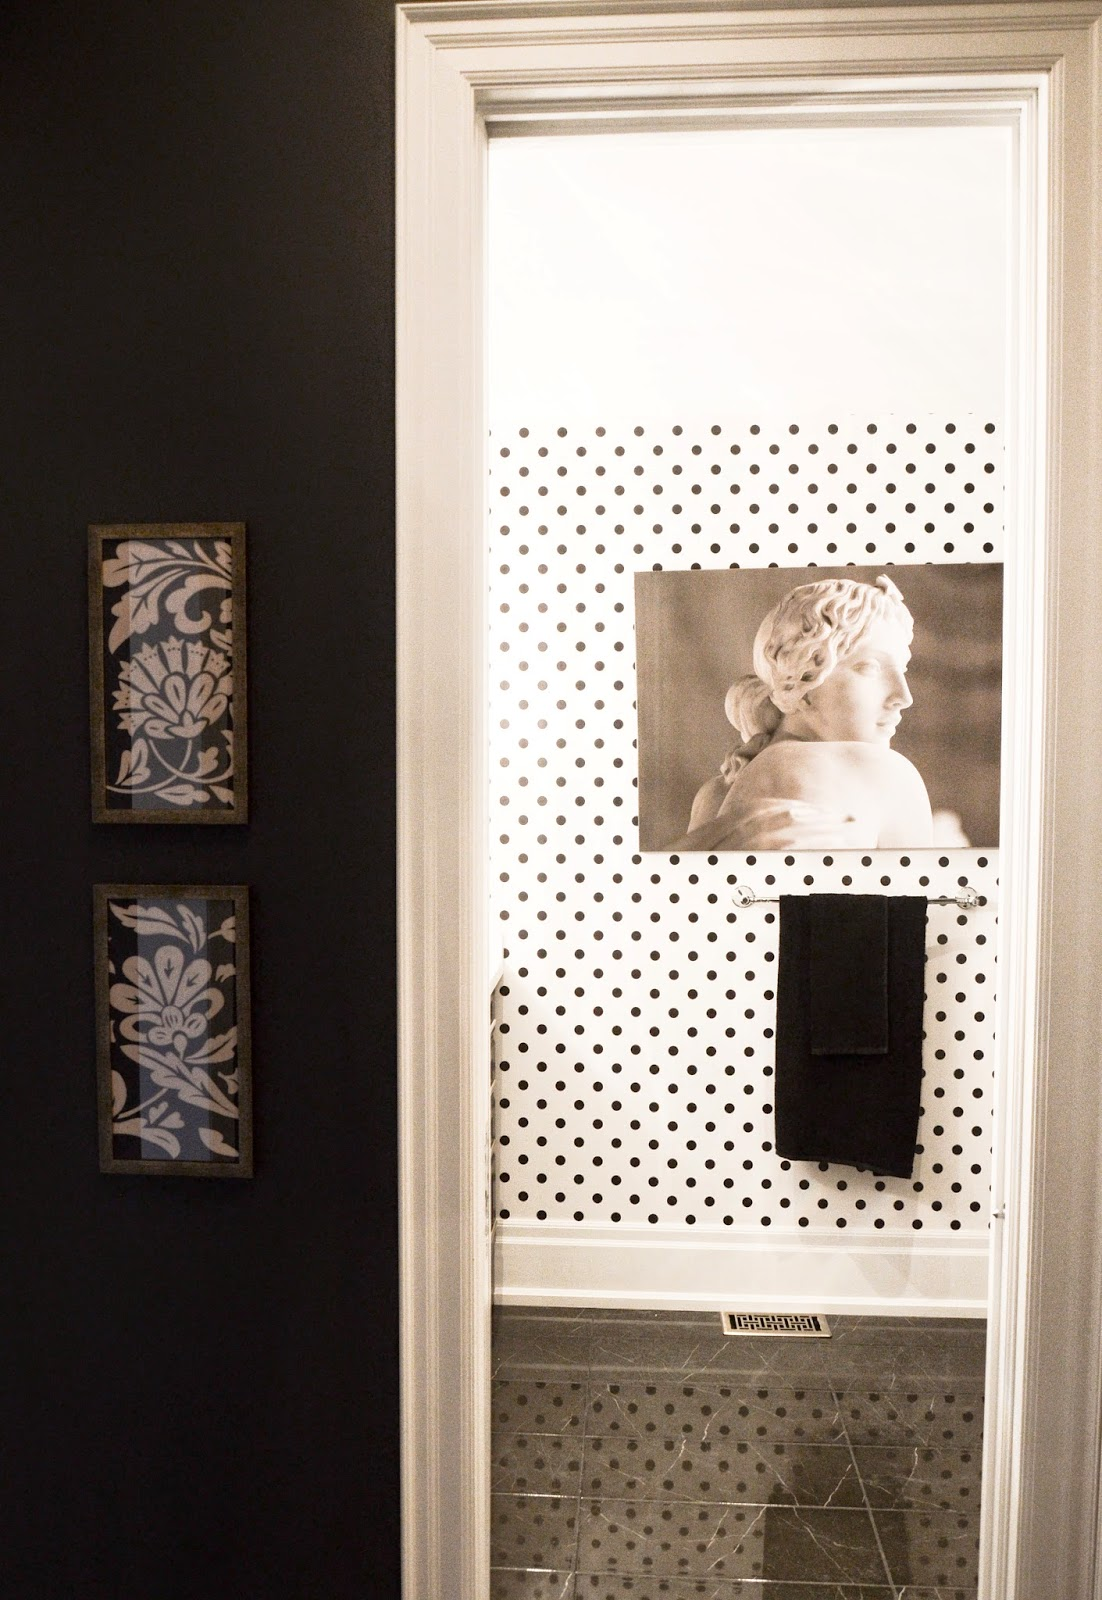 PMLOTTO KLEINBURG SHOWROOM: Polkadot wall paper in the bathroom